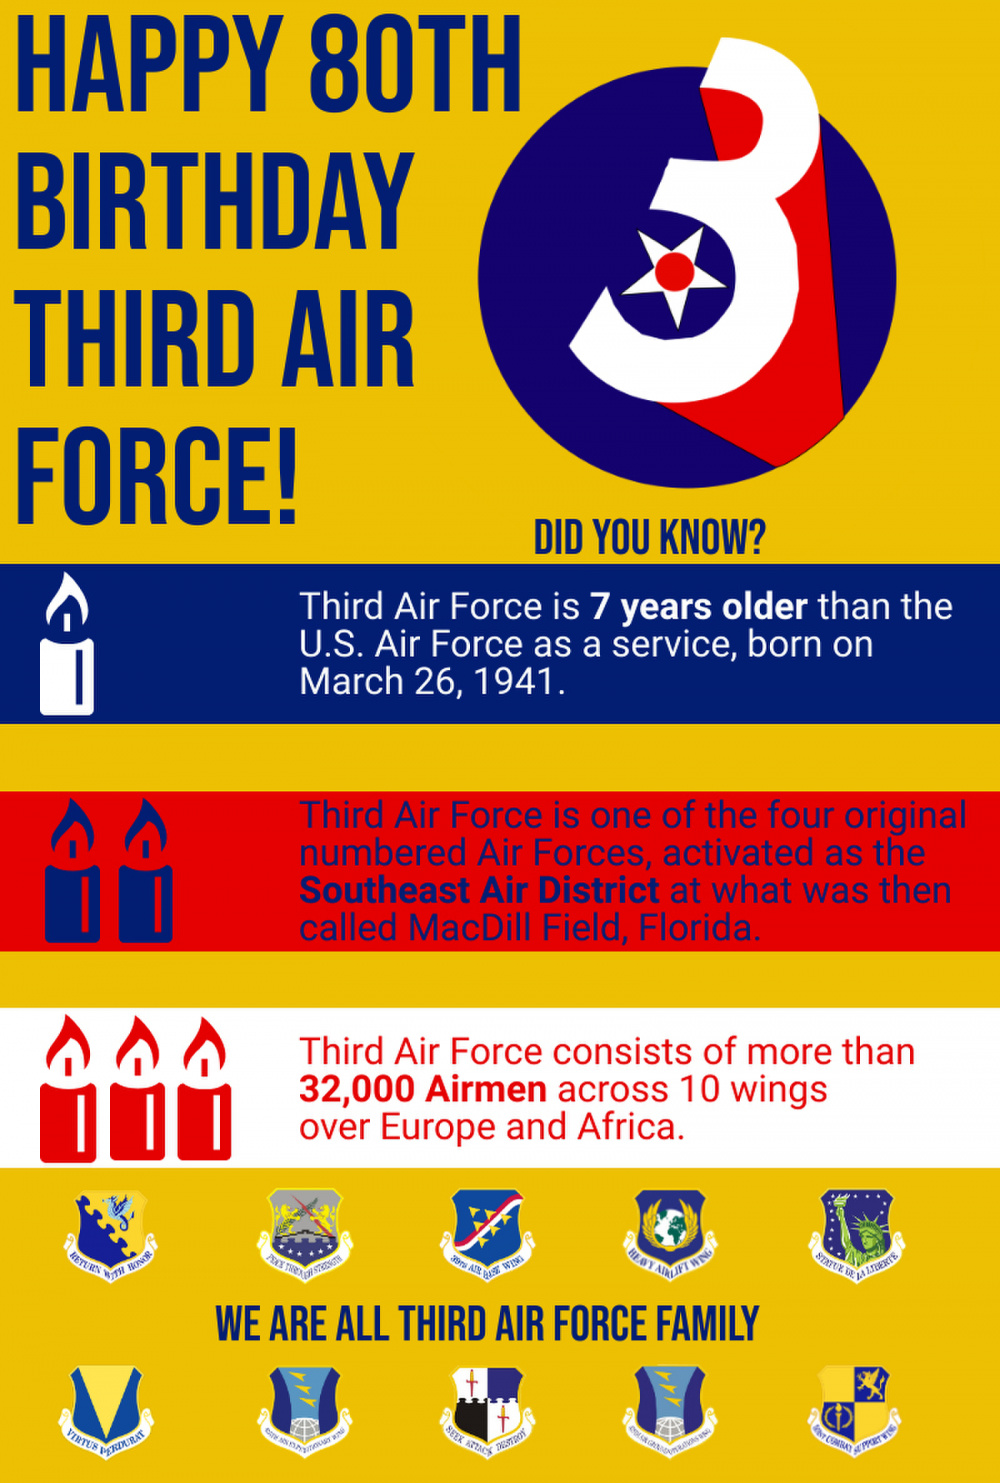 3rd AF leadership reflects on 80th birthday, focuses on future